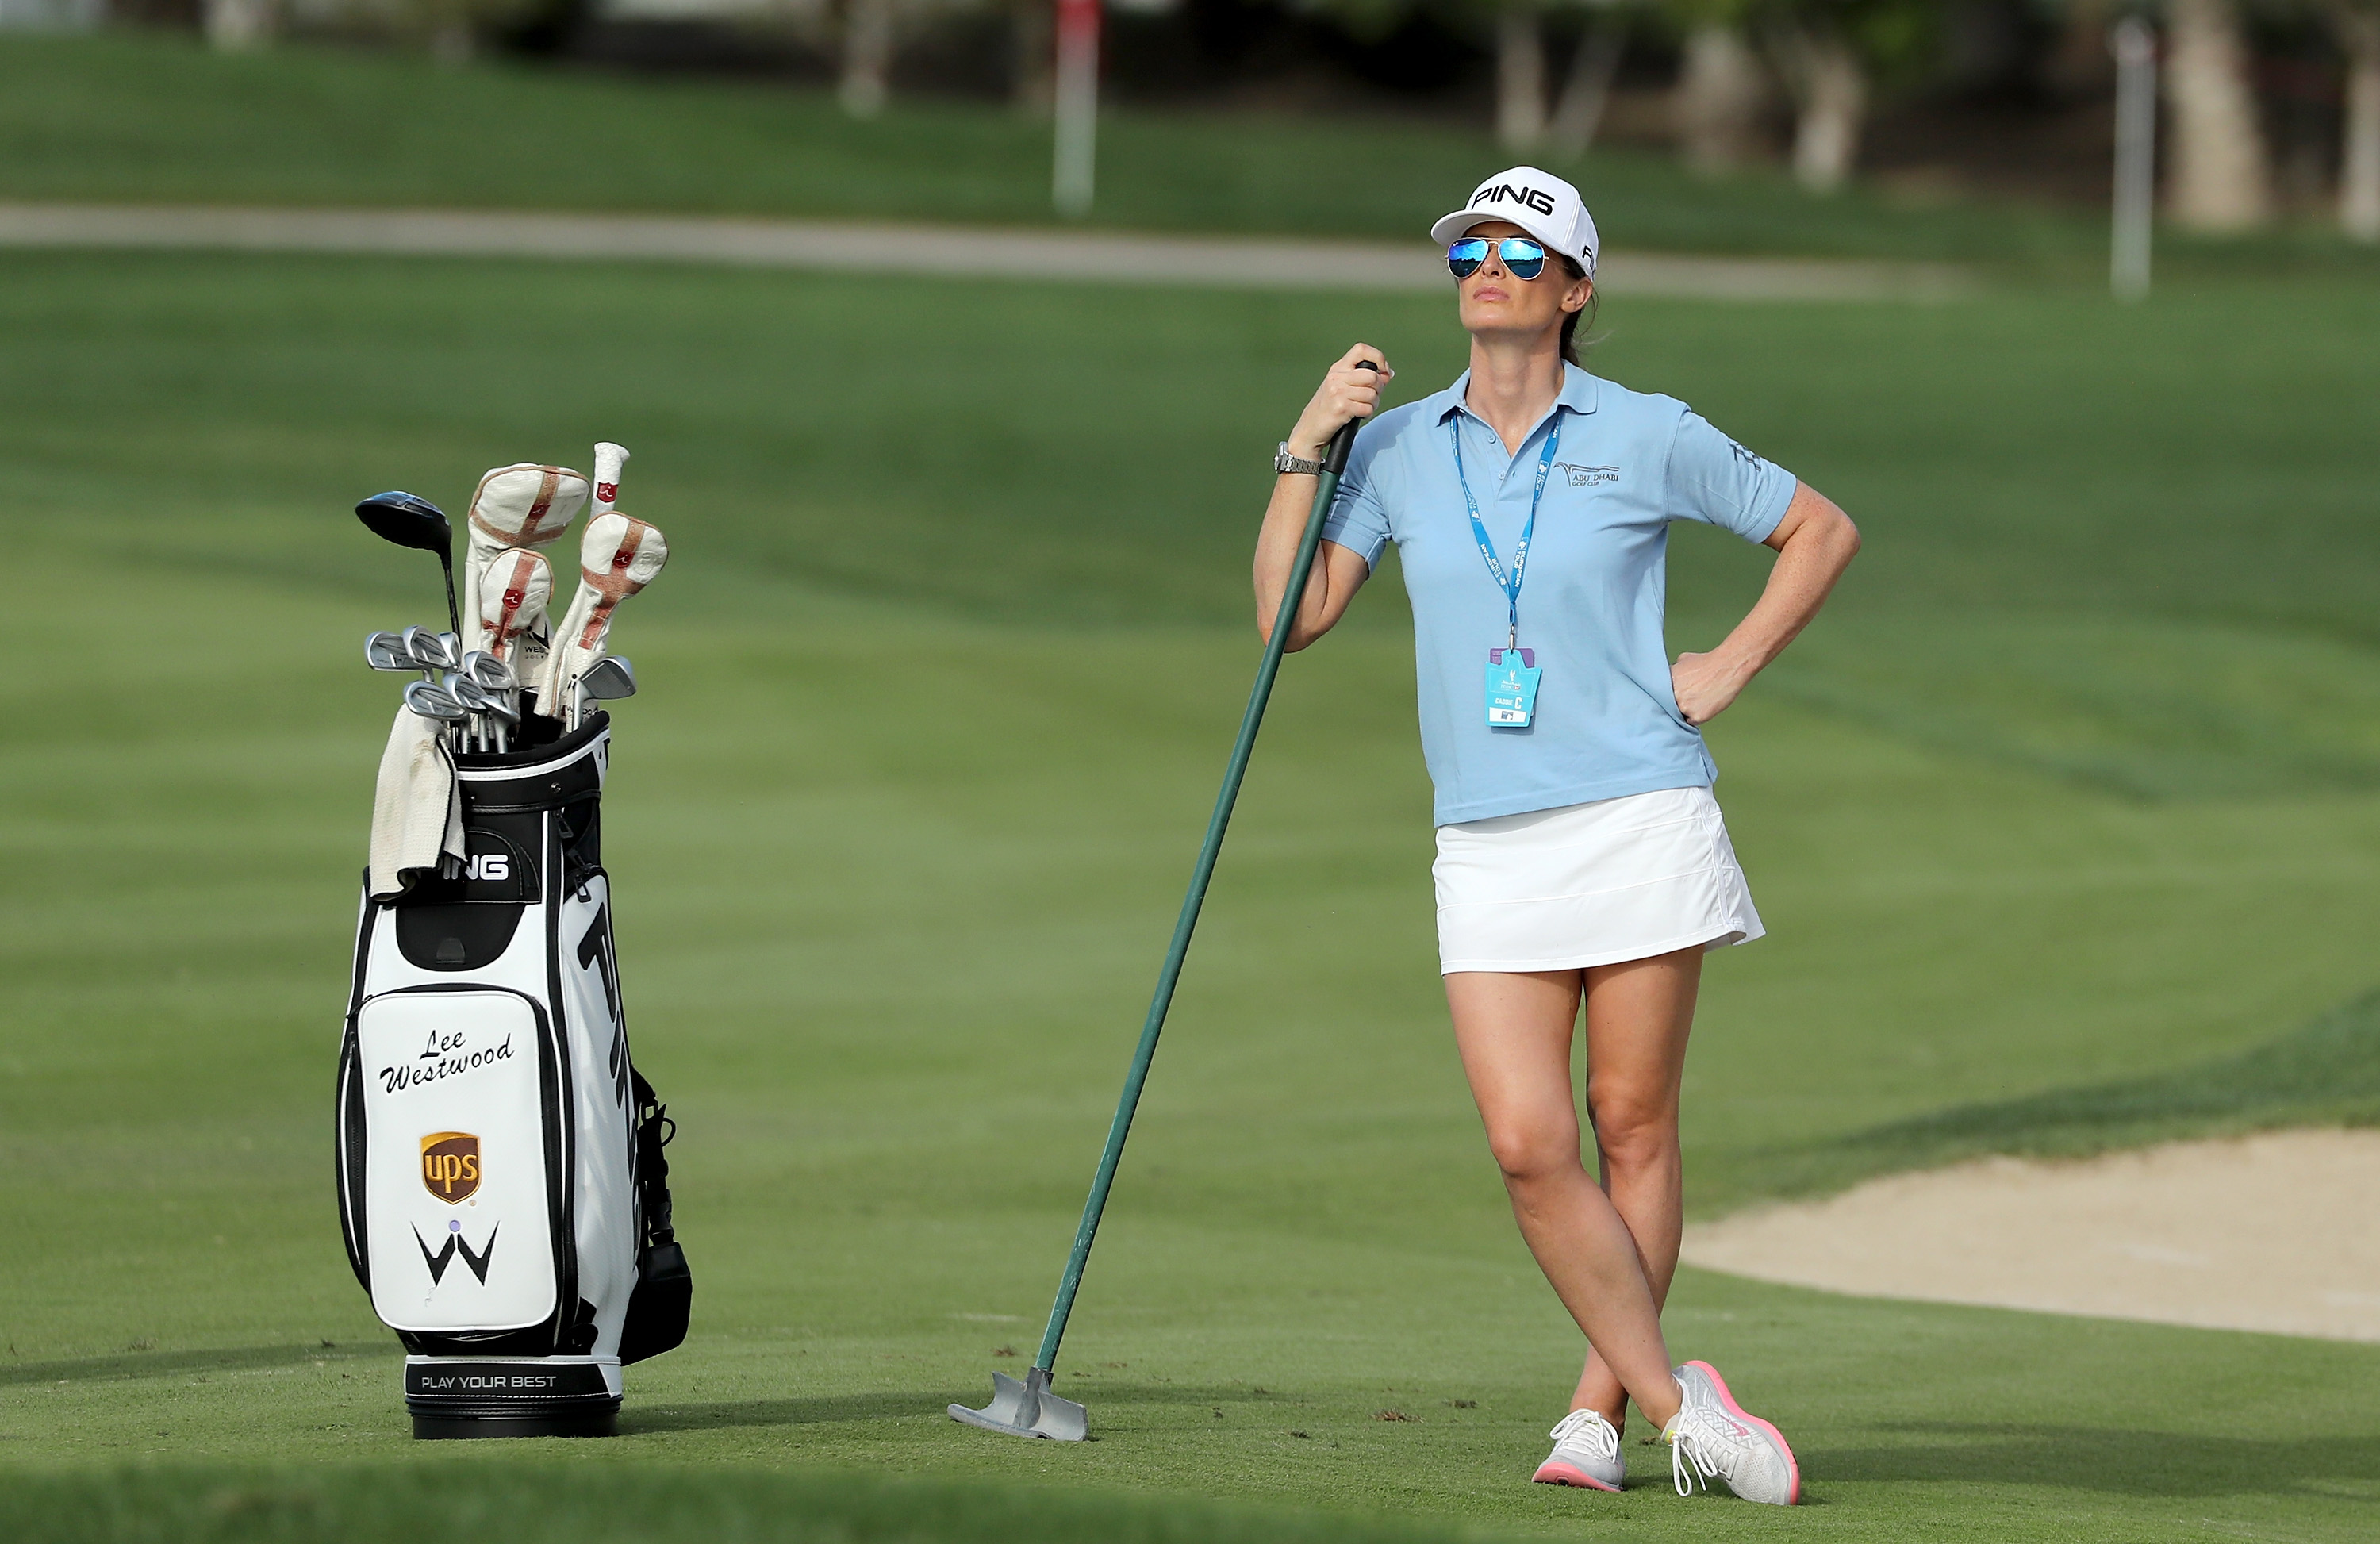 Westwood s girlfriend stands in as caddy in abu dhabi